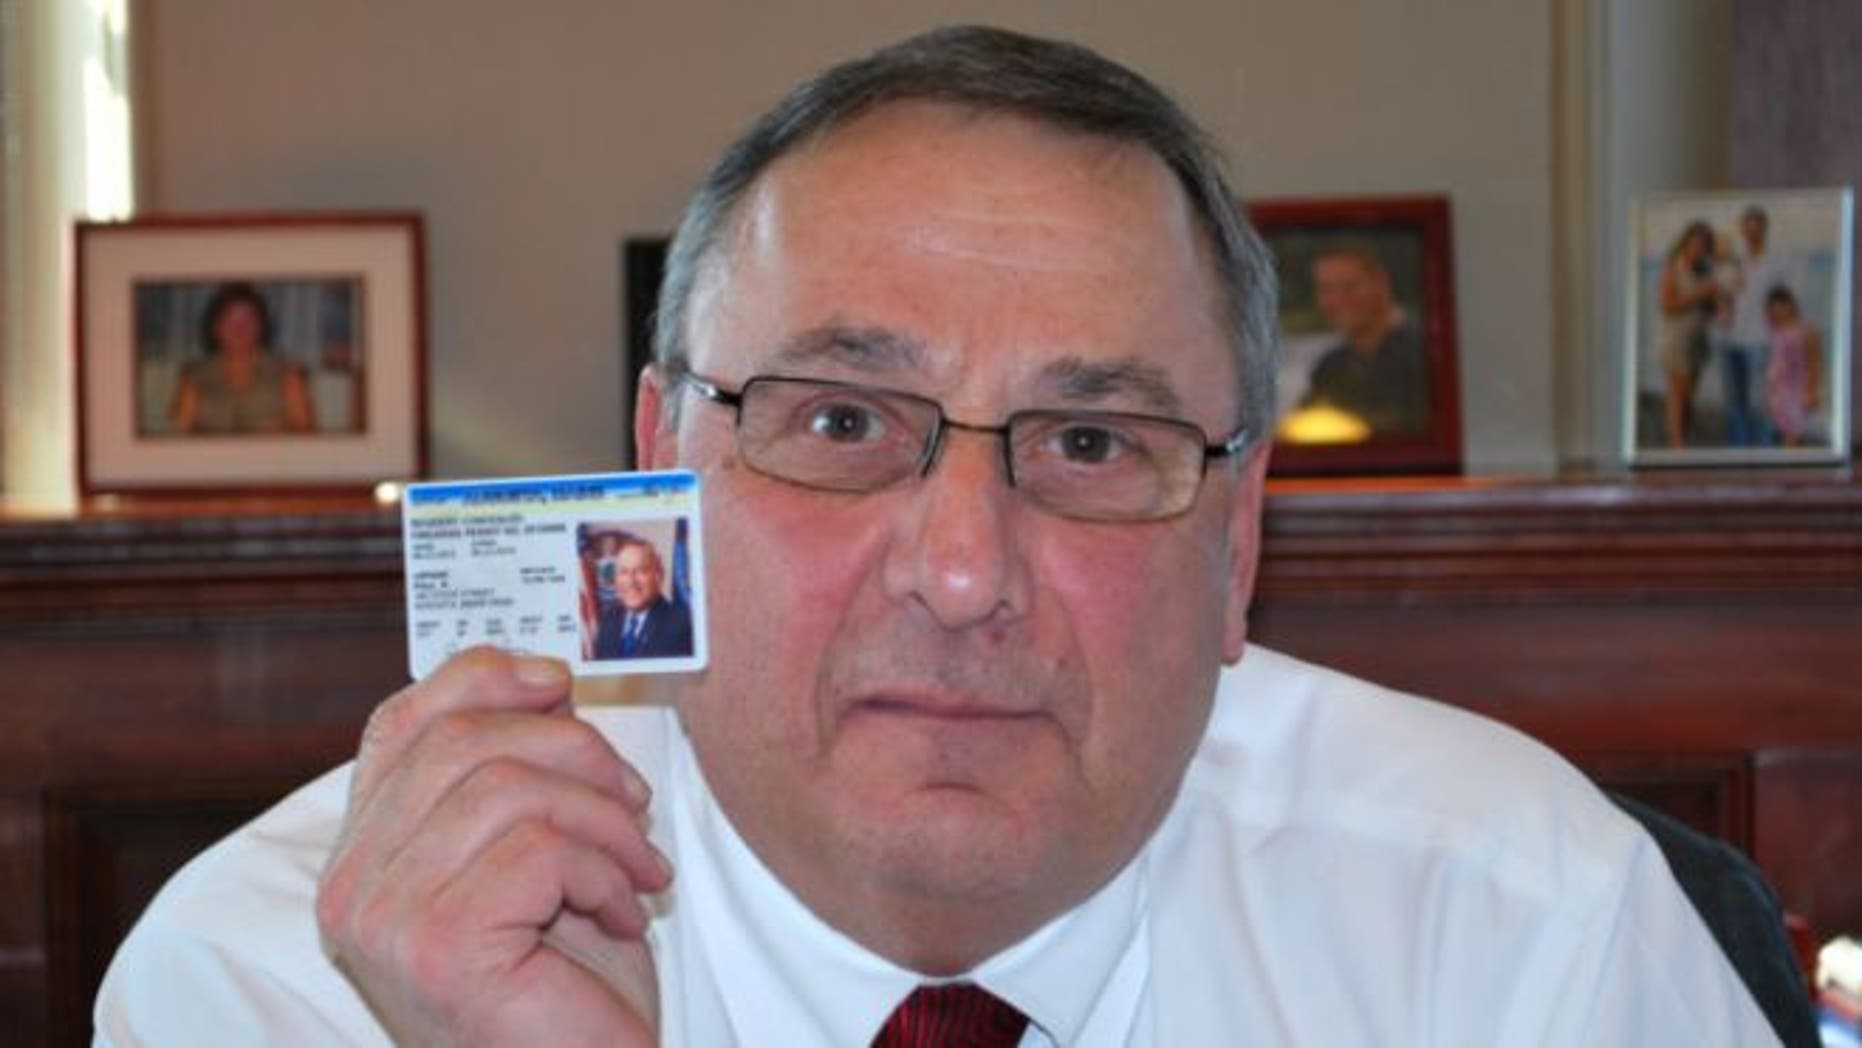 Feb. 12, 2013: In this photo tweeted by Gov. Paul LePage, the Maine governor displays his concealed firearms permit.